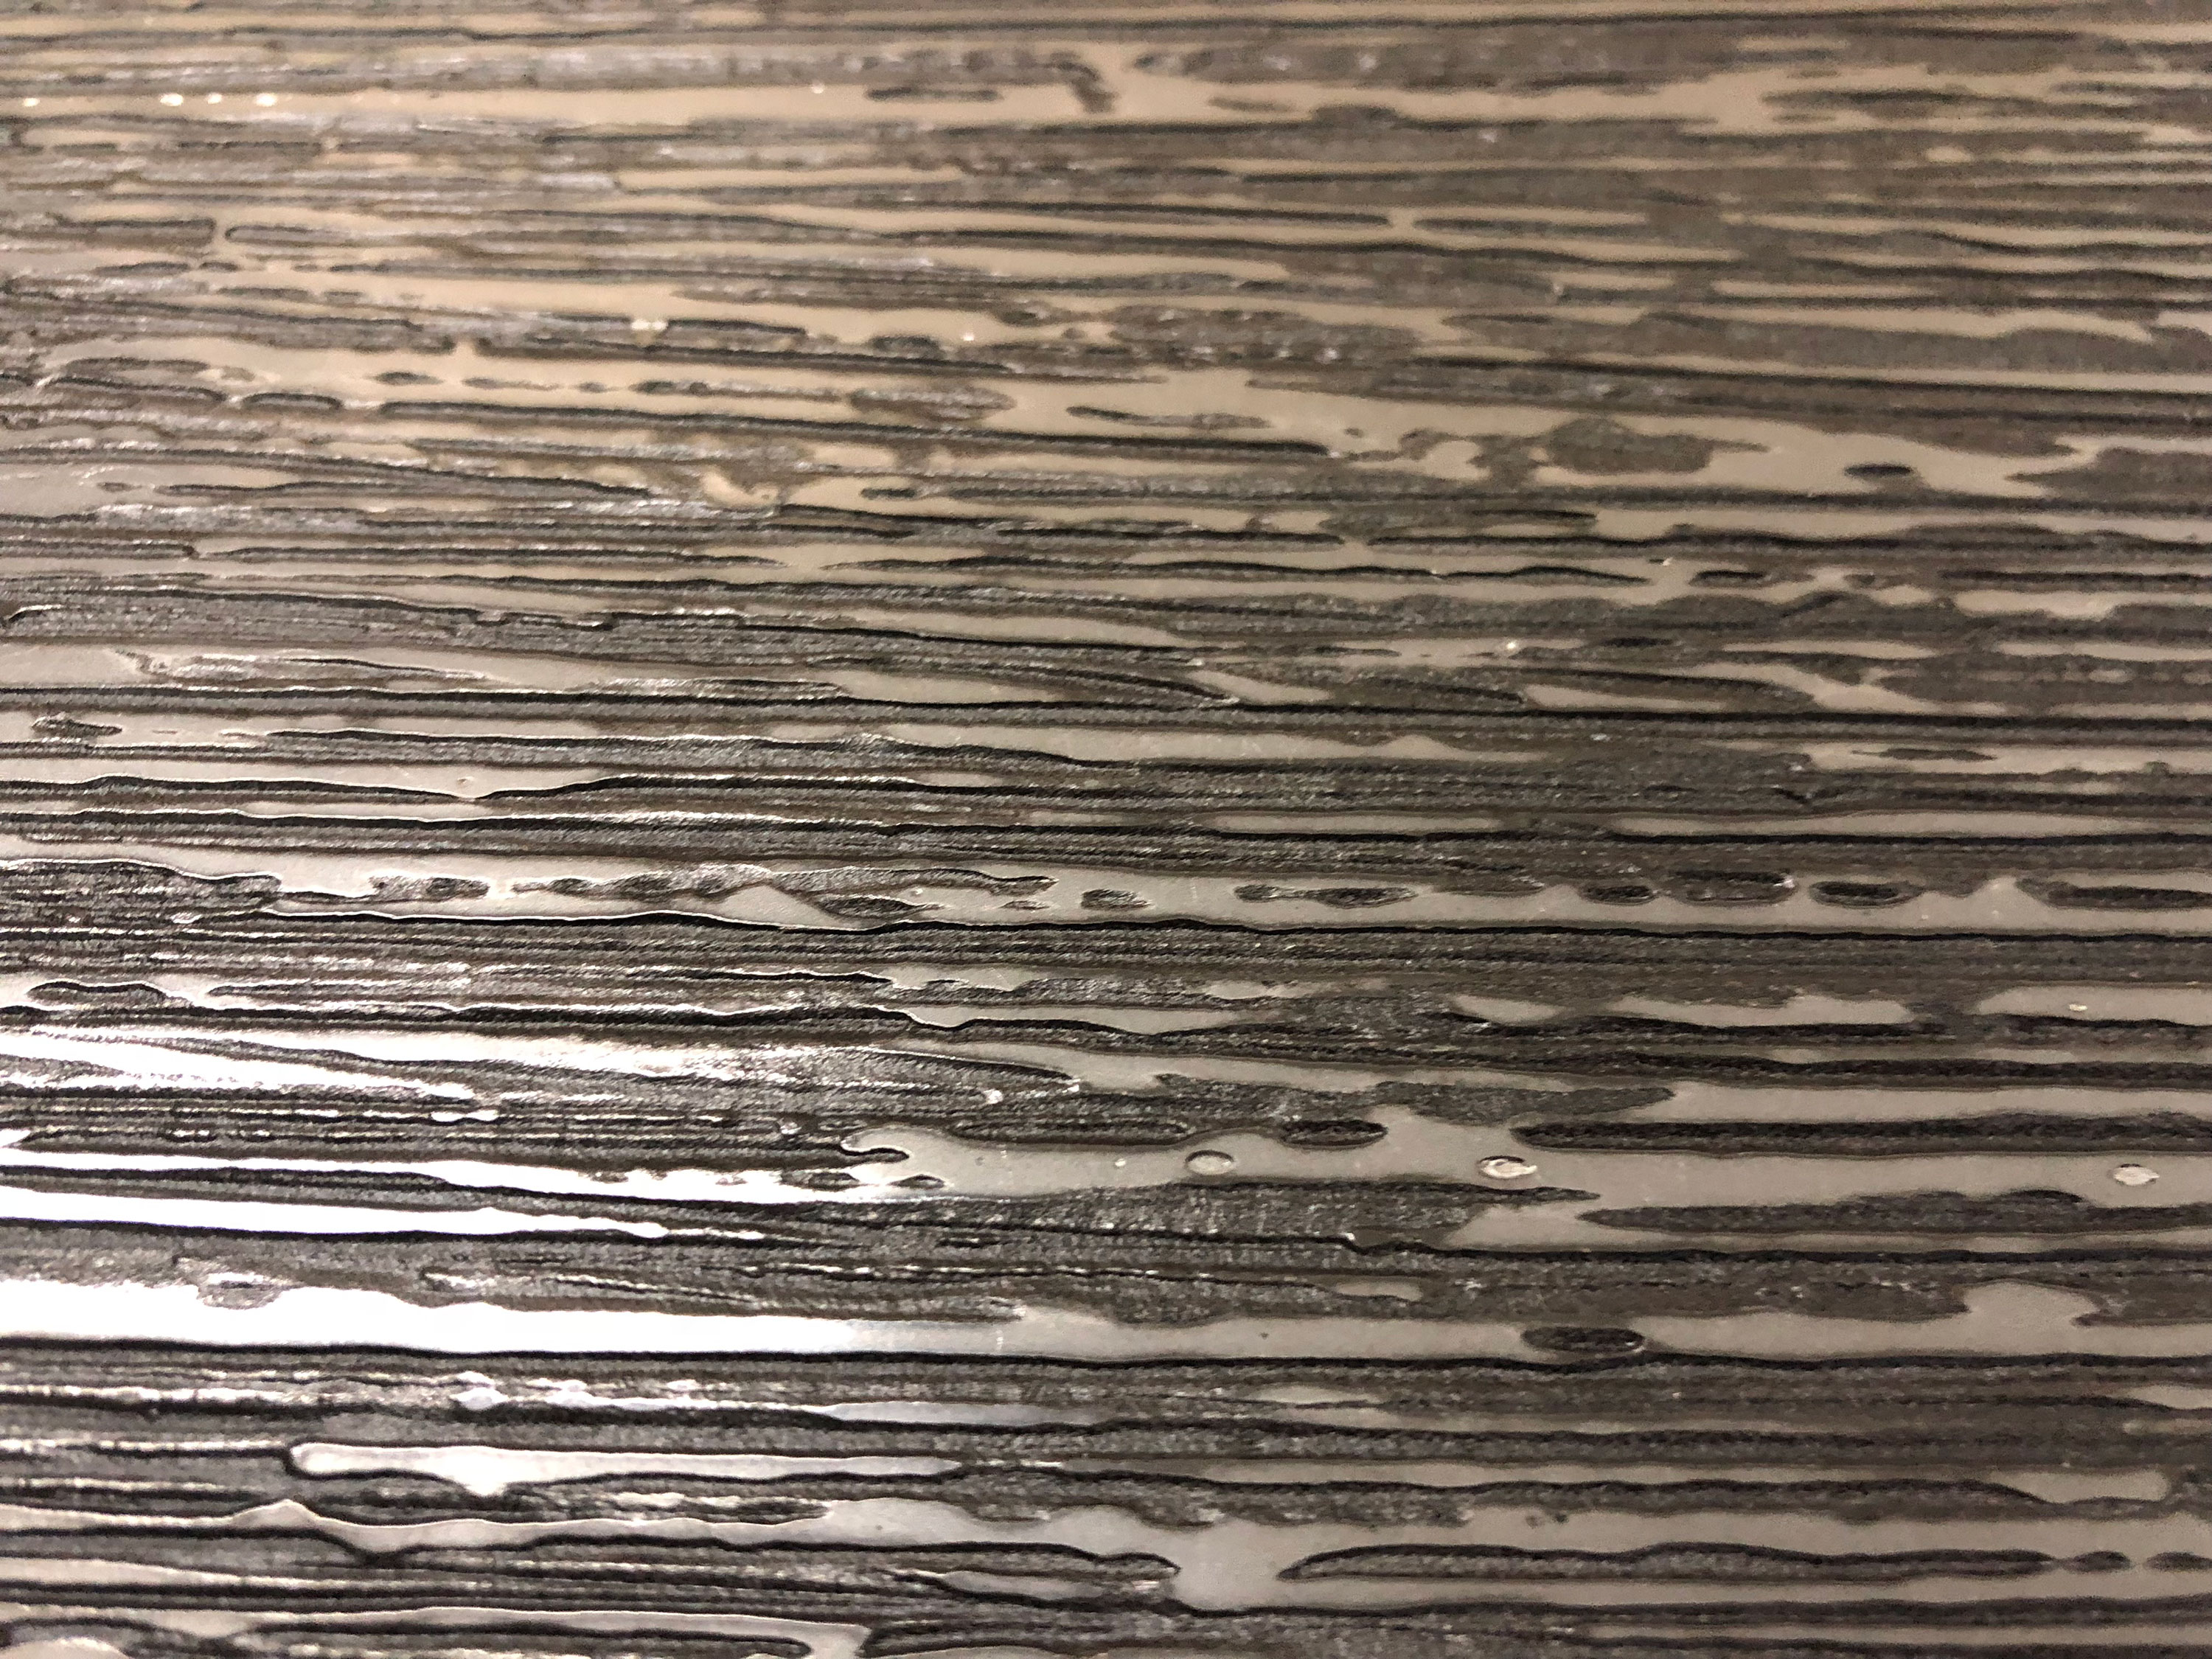 Etched - Resine Metalliche is a process of mixing metal powder with a resin to create castings that give the appearance of solid metal. Creating the strength and appearance of metal, with lower production costs. | Matter of Stuff